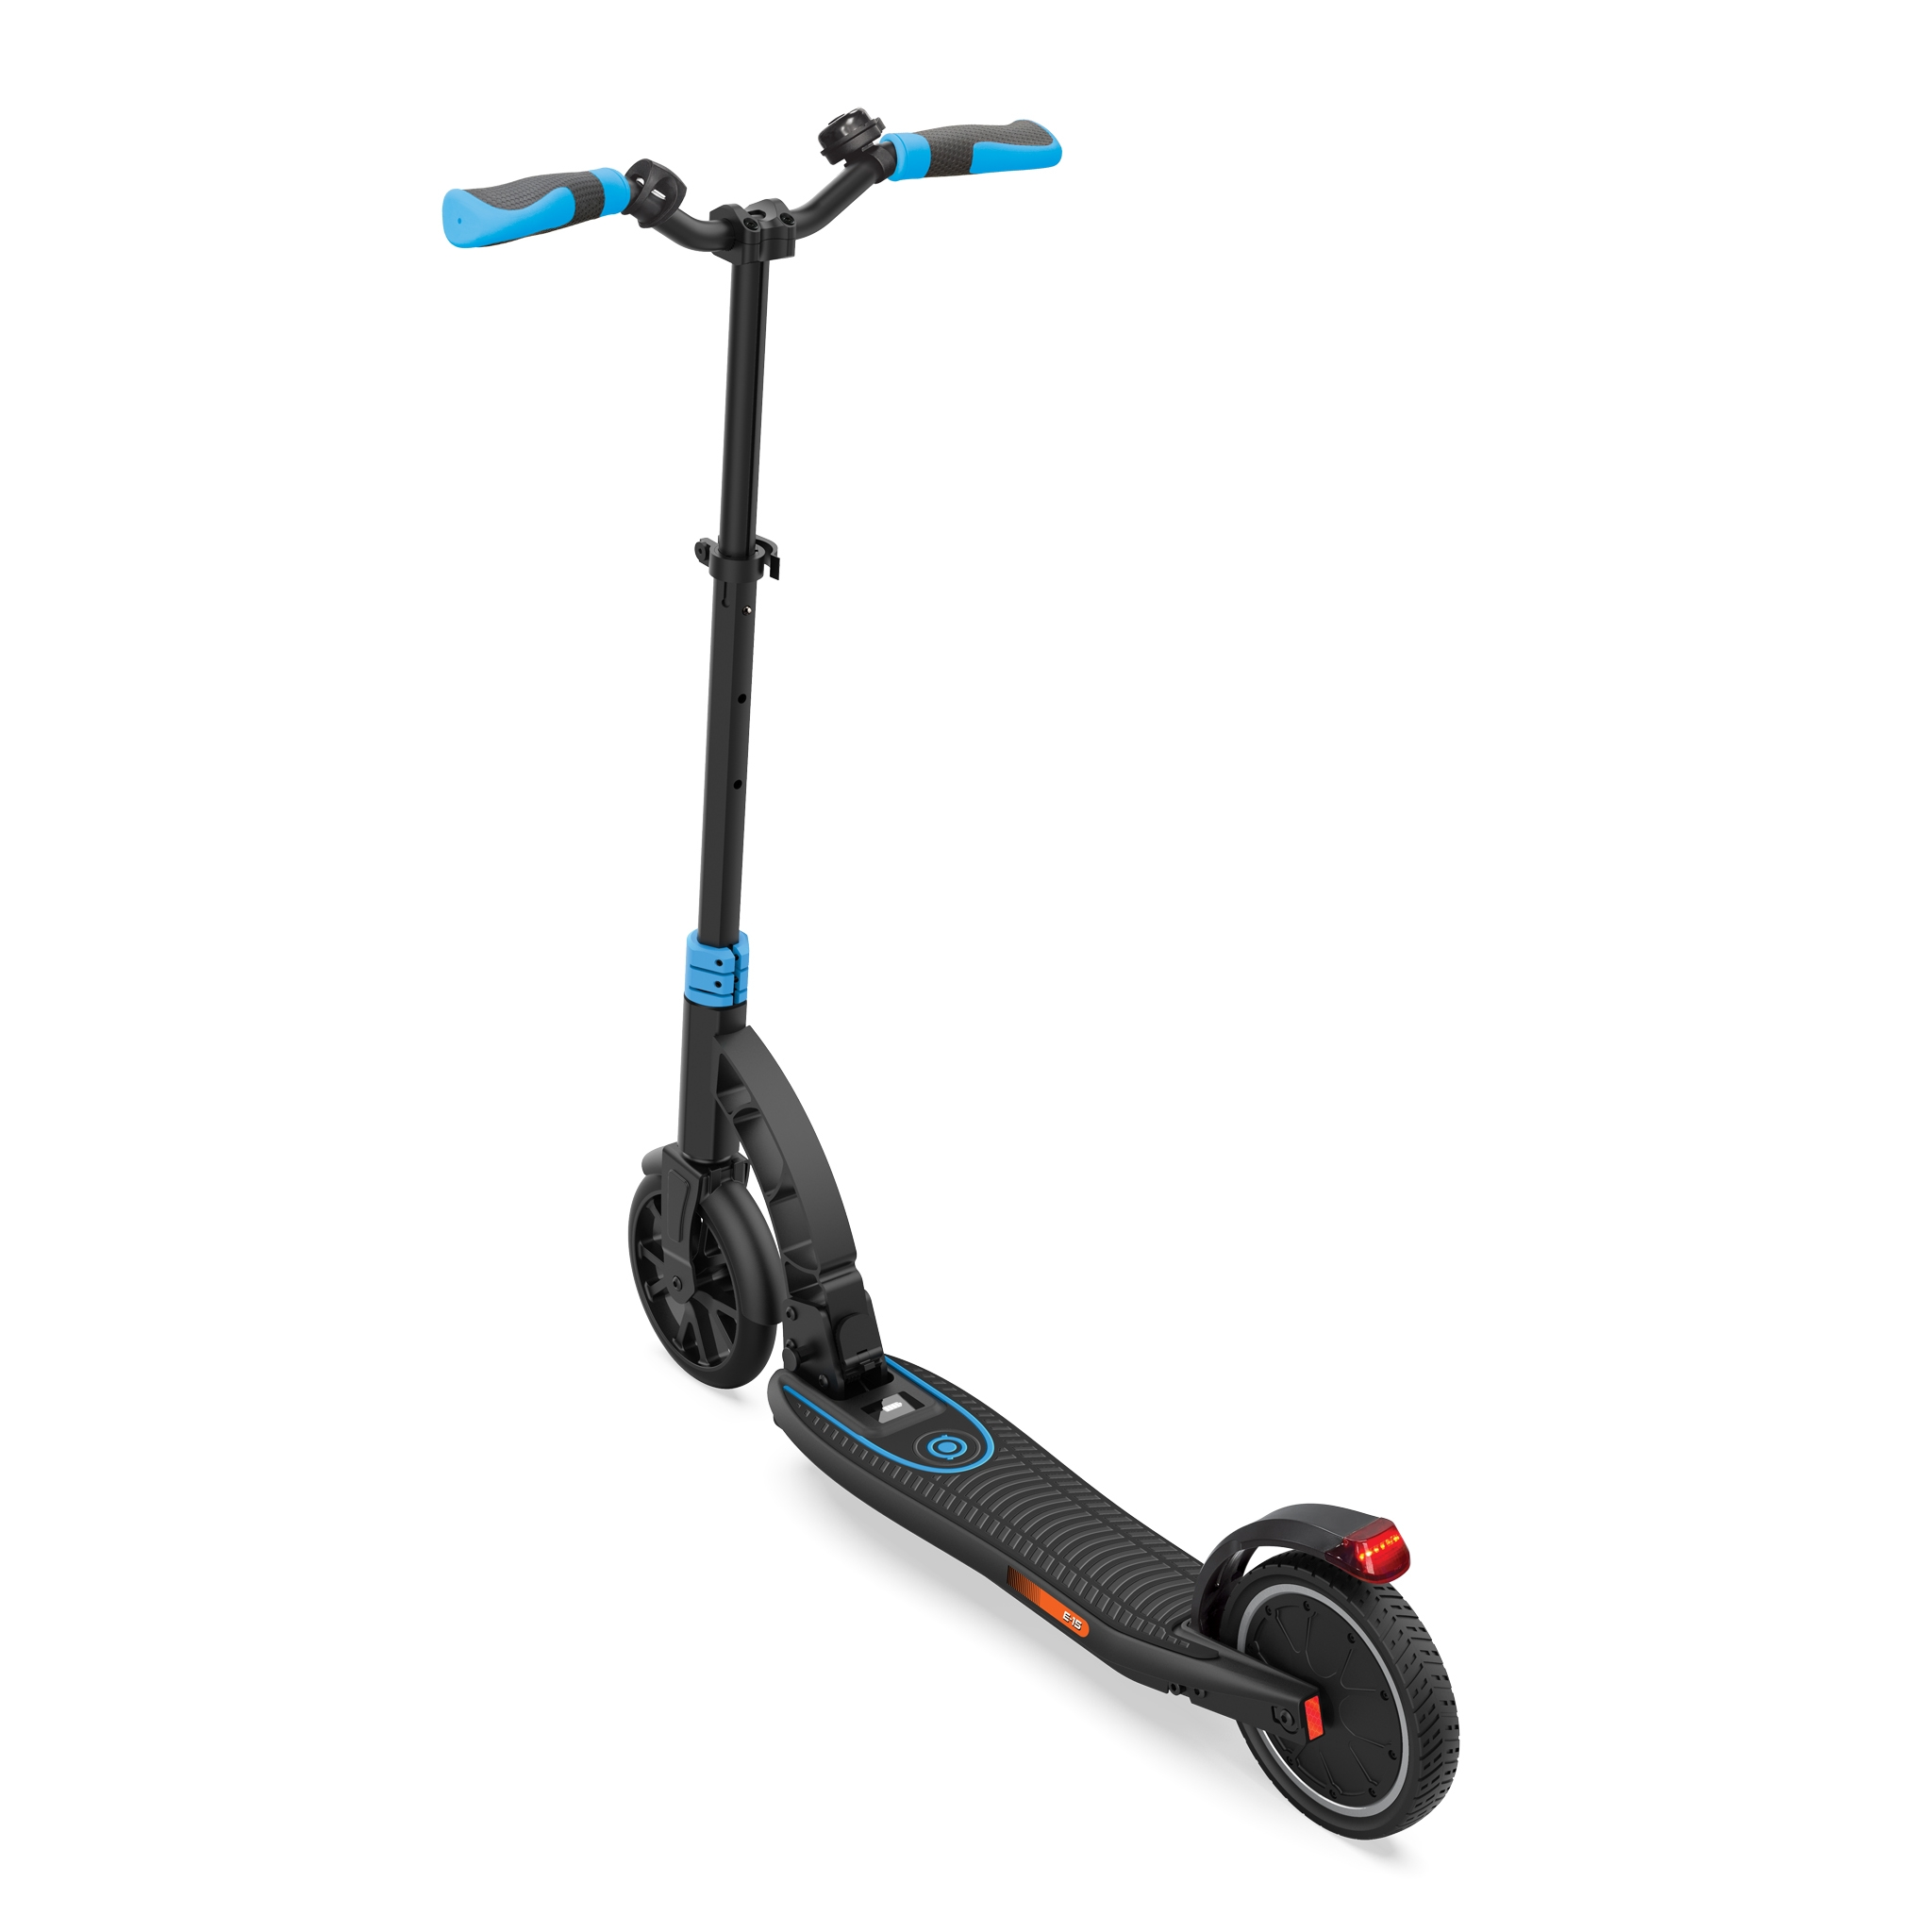 Globber-ONE-K-E-MOTION-15-safe-foldable-electric-scooter-for-teens-and-young-adults-with-dual-brake system-sky-blue 4